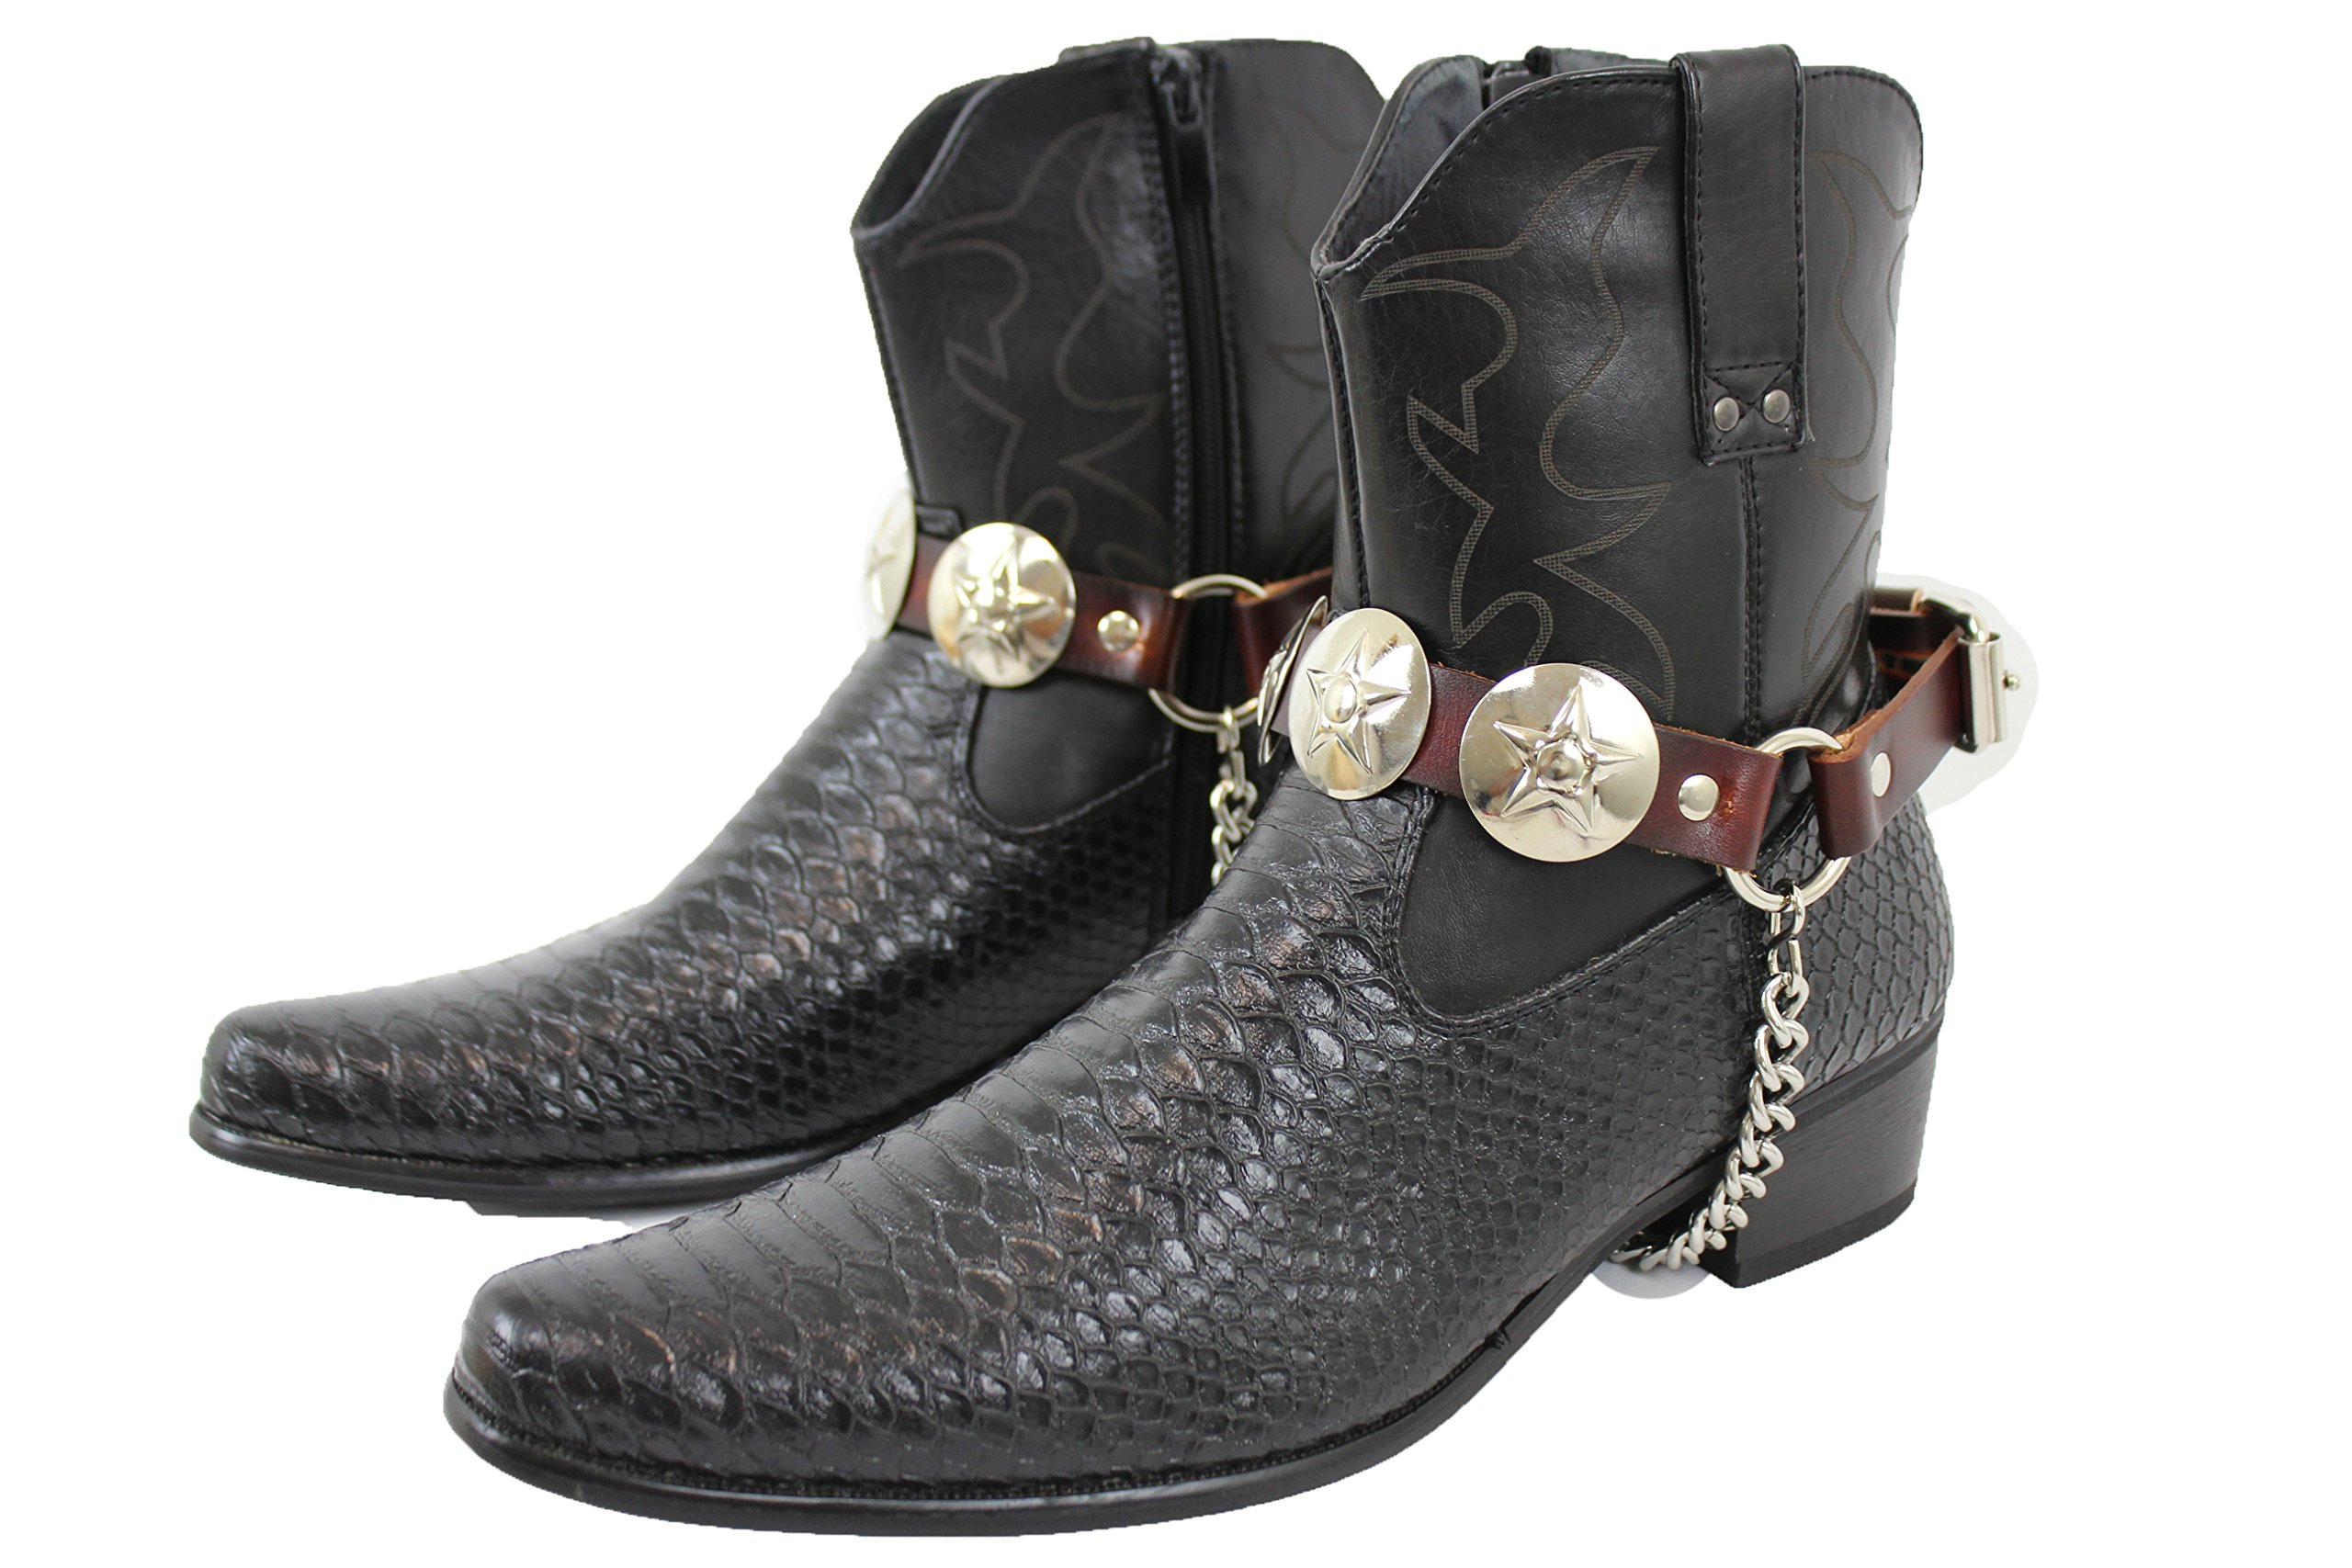 TFJ Men Biker Jewelry Boots Brown Leather Pair Straps Silver Metal Chains Texas Lone Star Charm